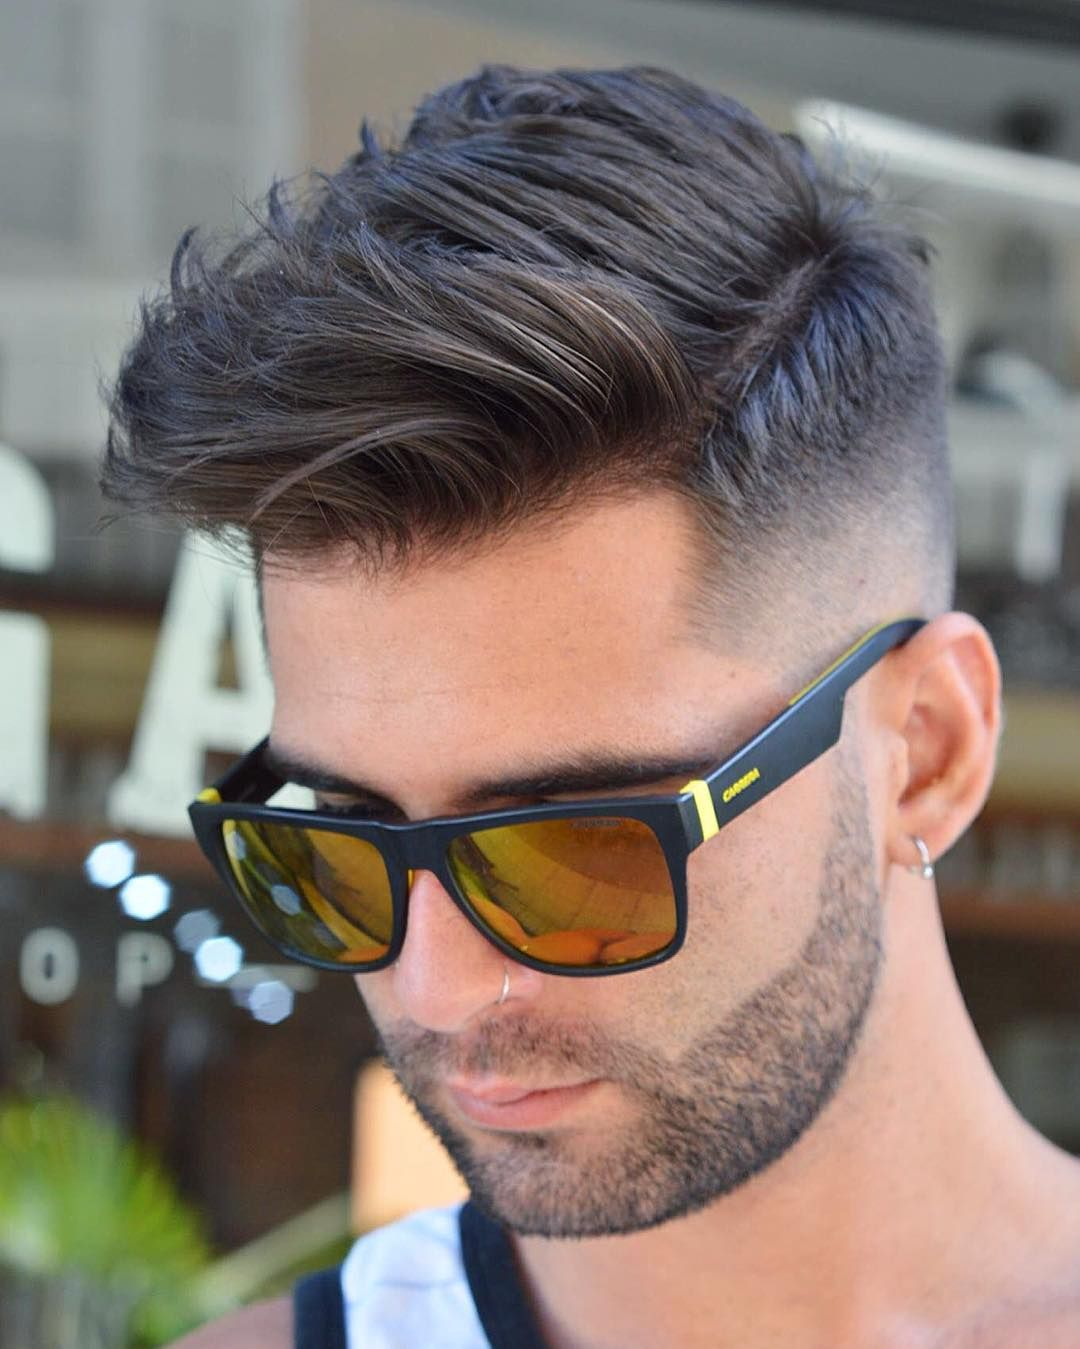 new hair cut style for man s hairstyles 2017 haircuts create and hair style 8587 | 5706eccdbbd33c49a7b224337b3aea0f